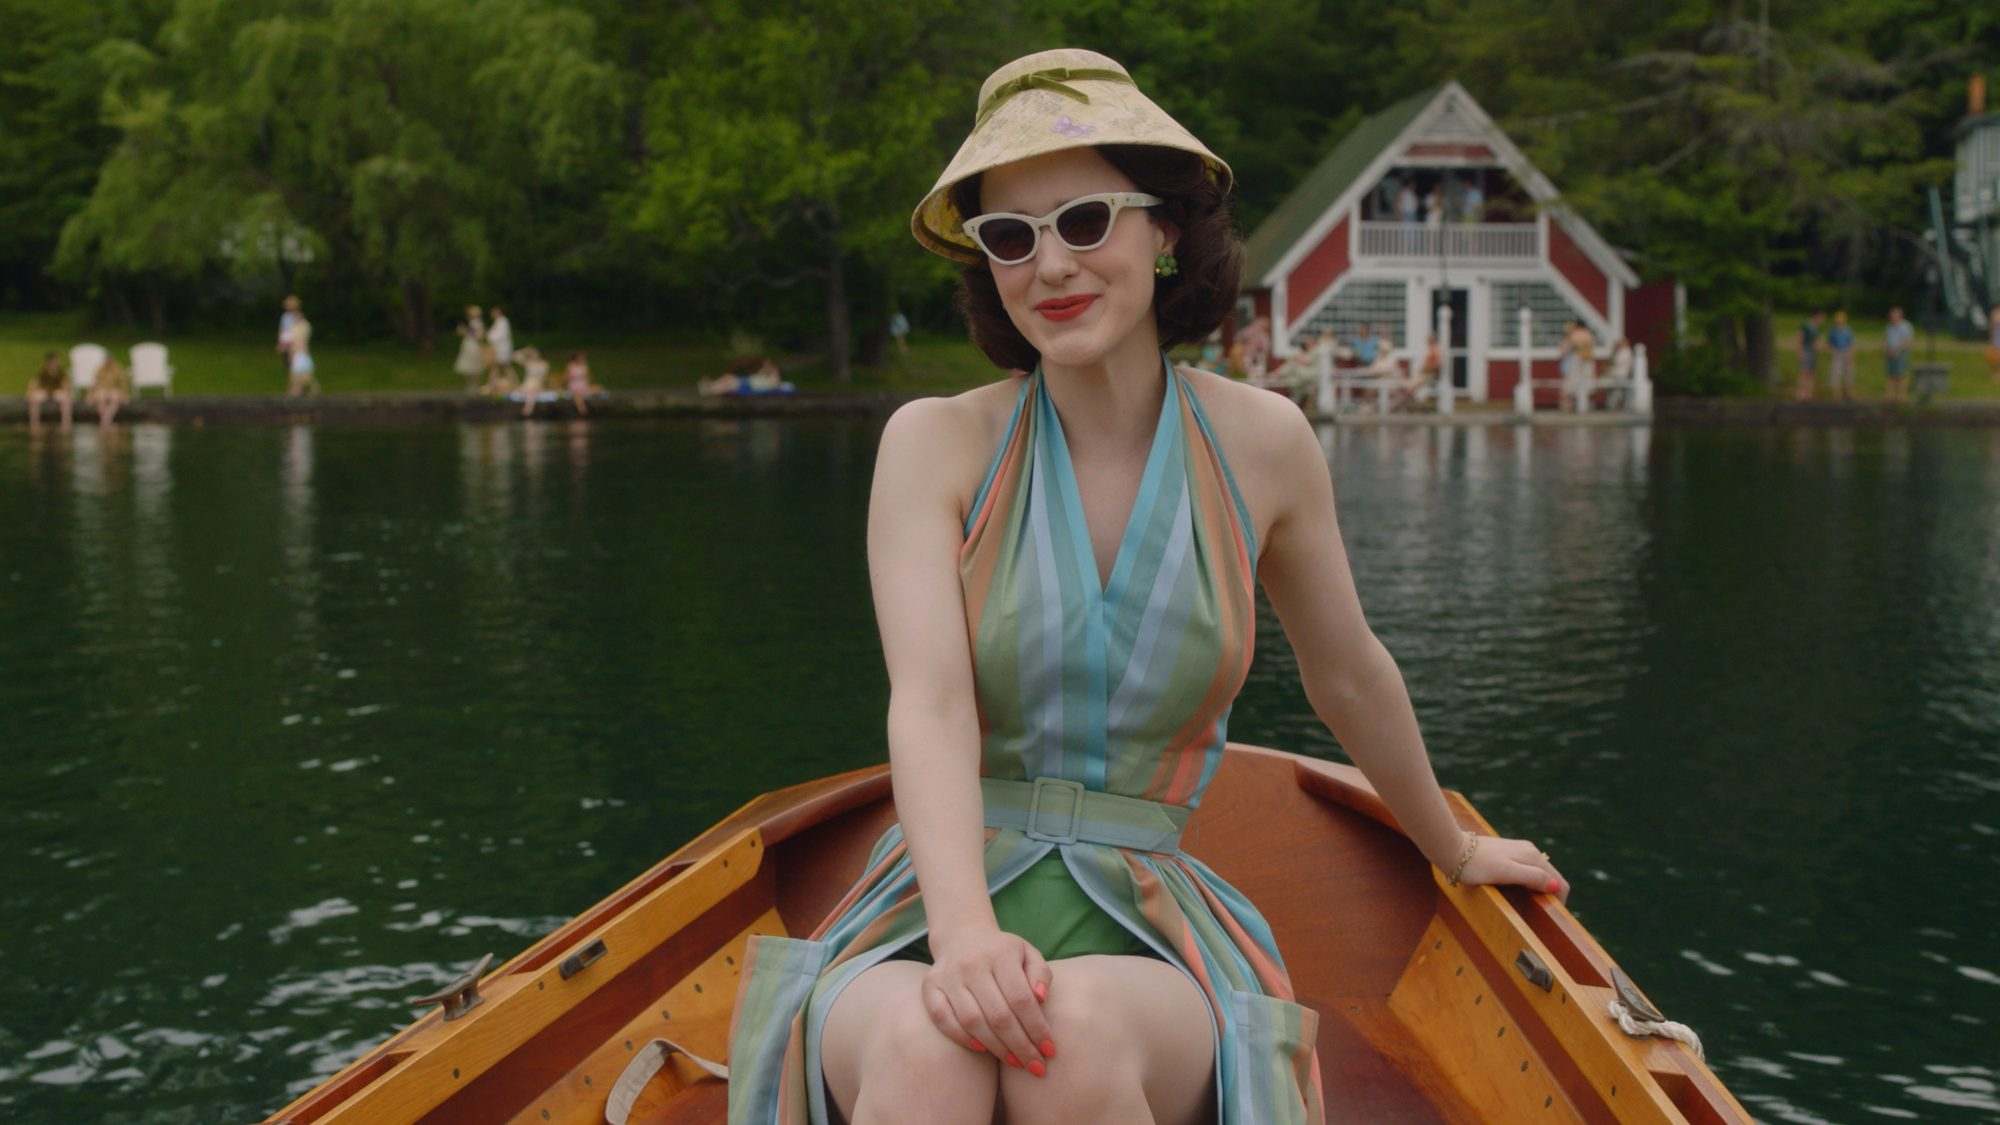 WATCH: 'The Marvelous Mrs. Maisel' Is Headed to This Southern City for Season 3